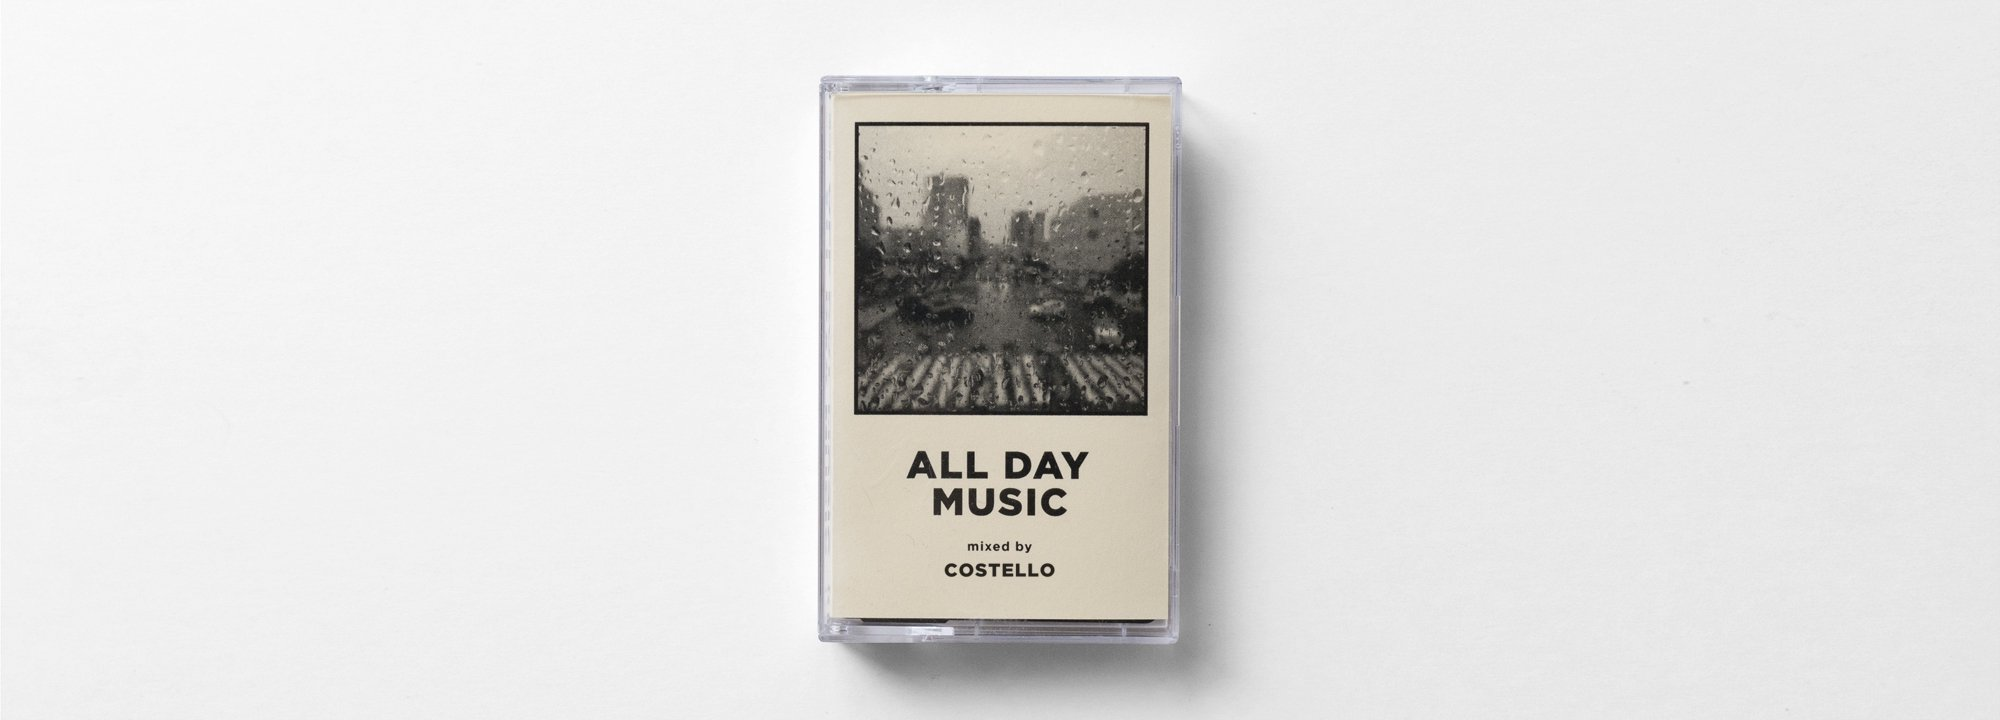 ALL DAY MUSIC #8 - Mixed by COSTELLO